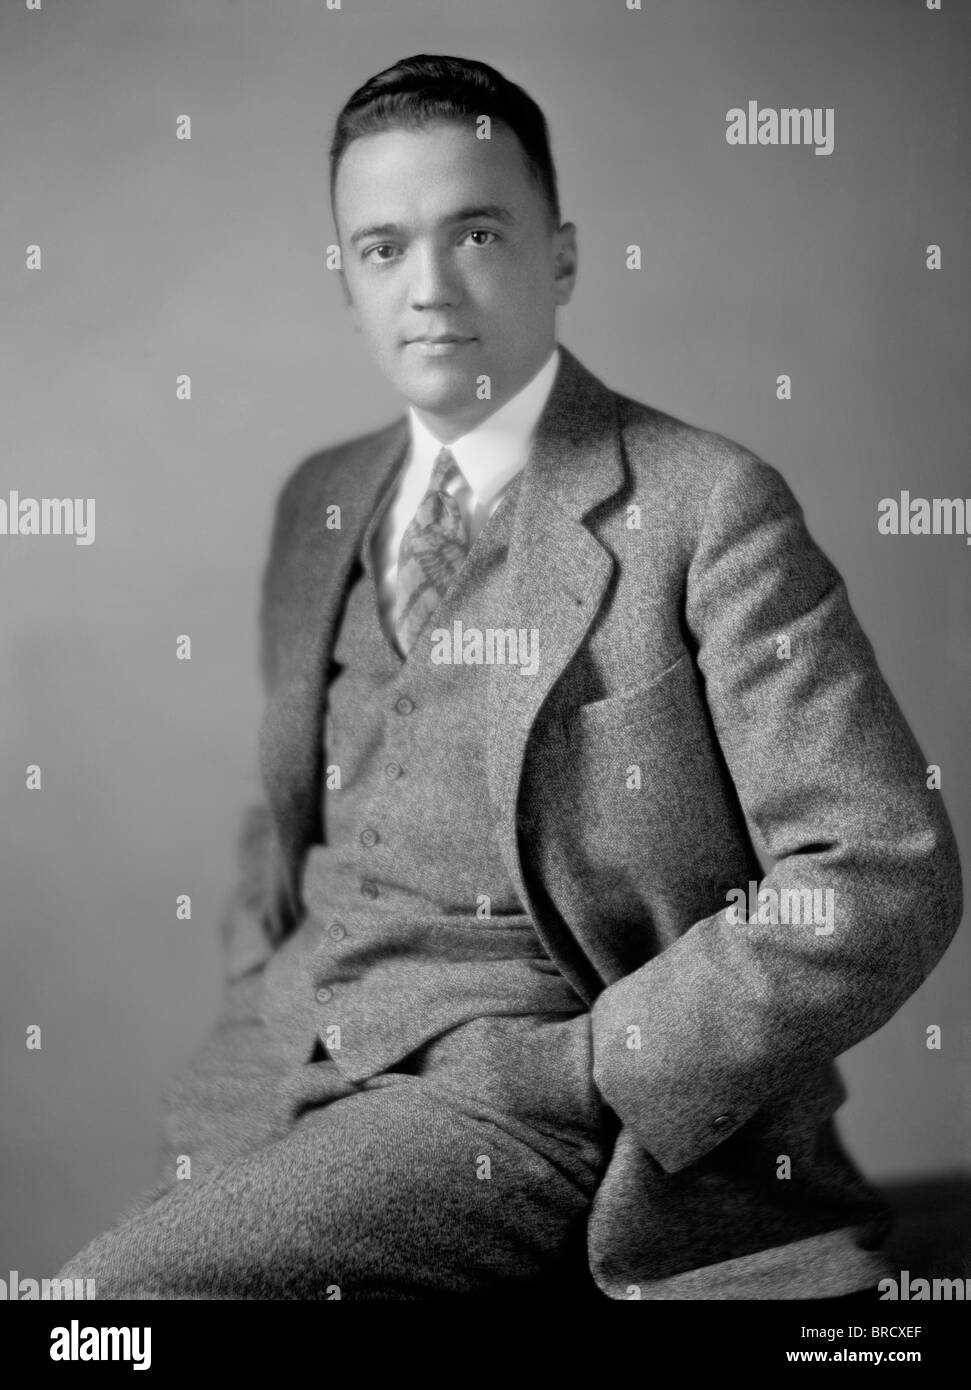 Portrait photo c1920s of J (John) Edgar Hoover (1895 - 1972) - first Director of the Federal Bureau of Investigation - Stock Image